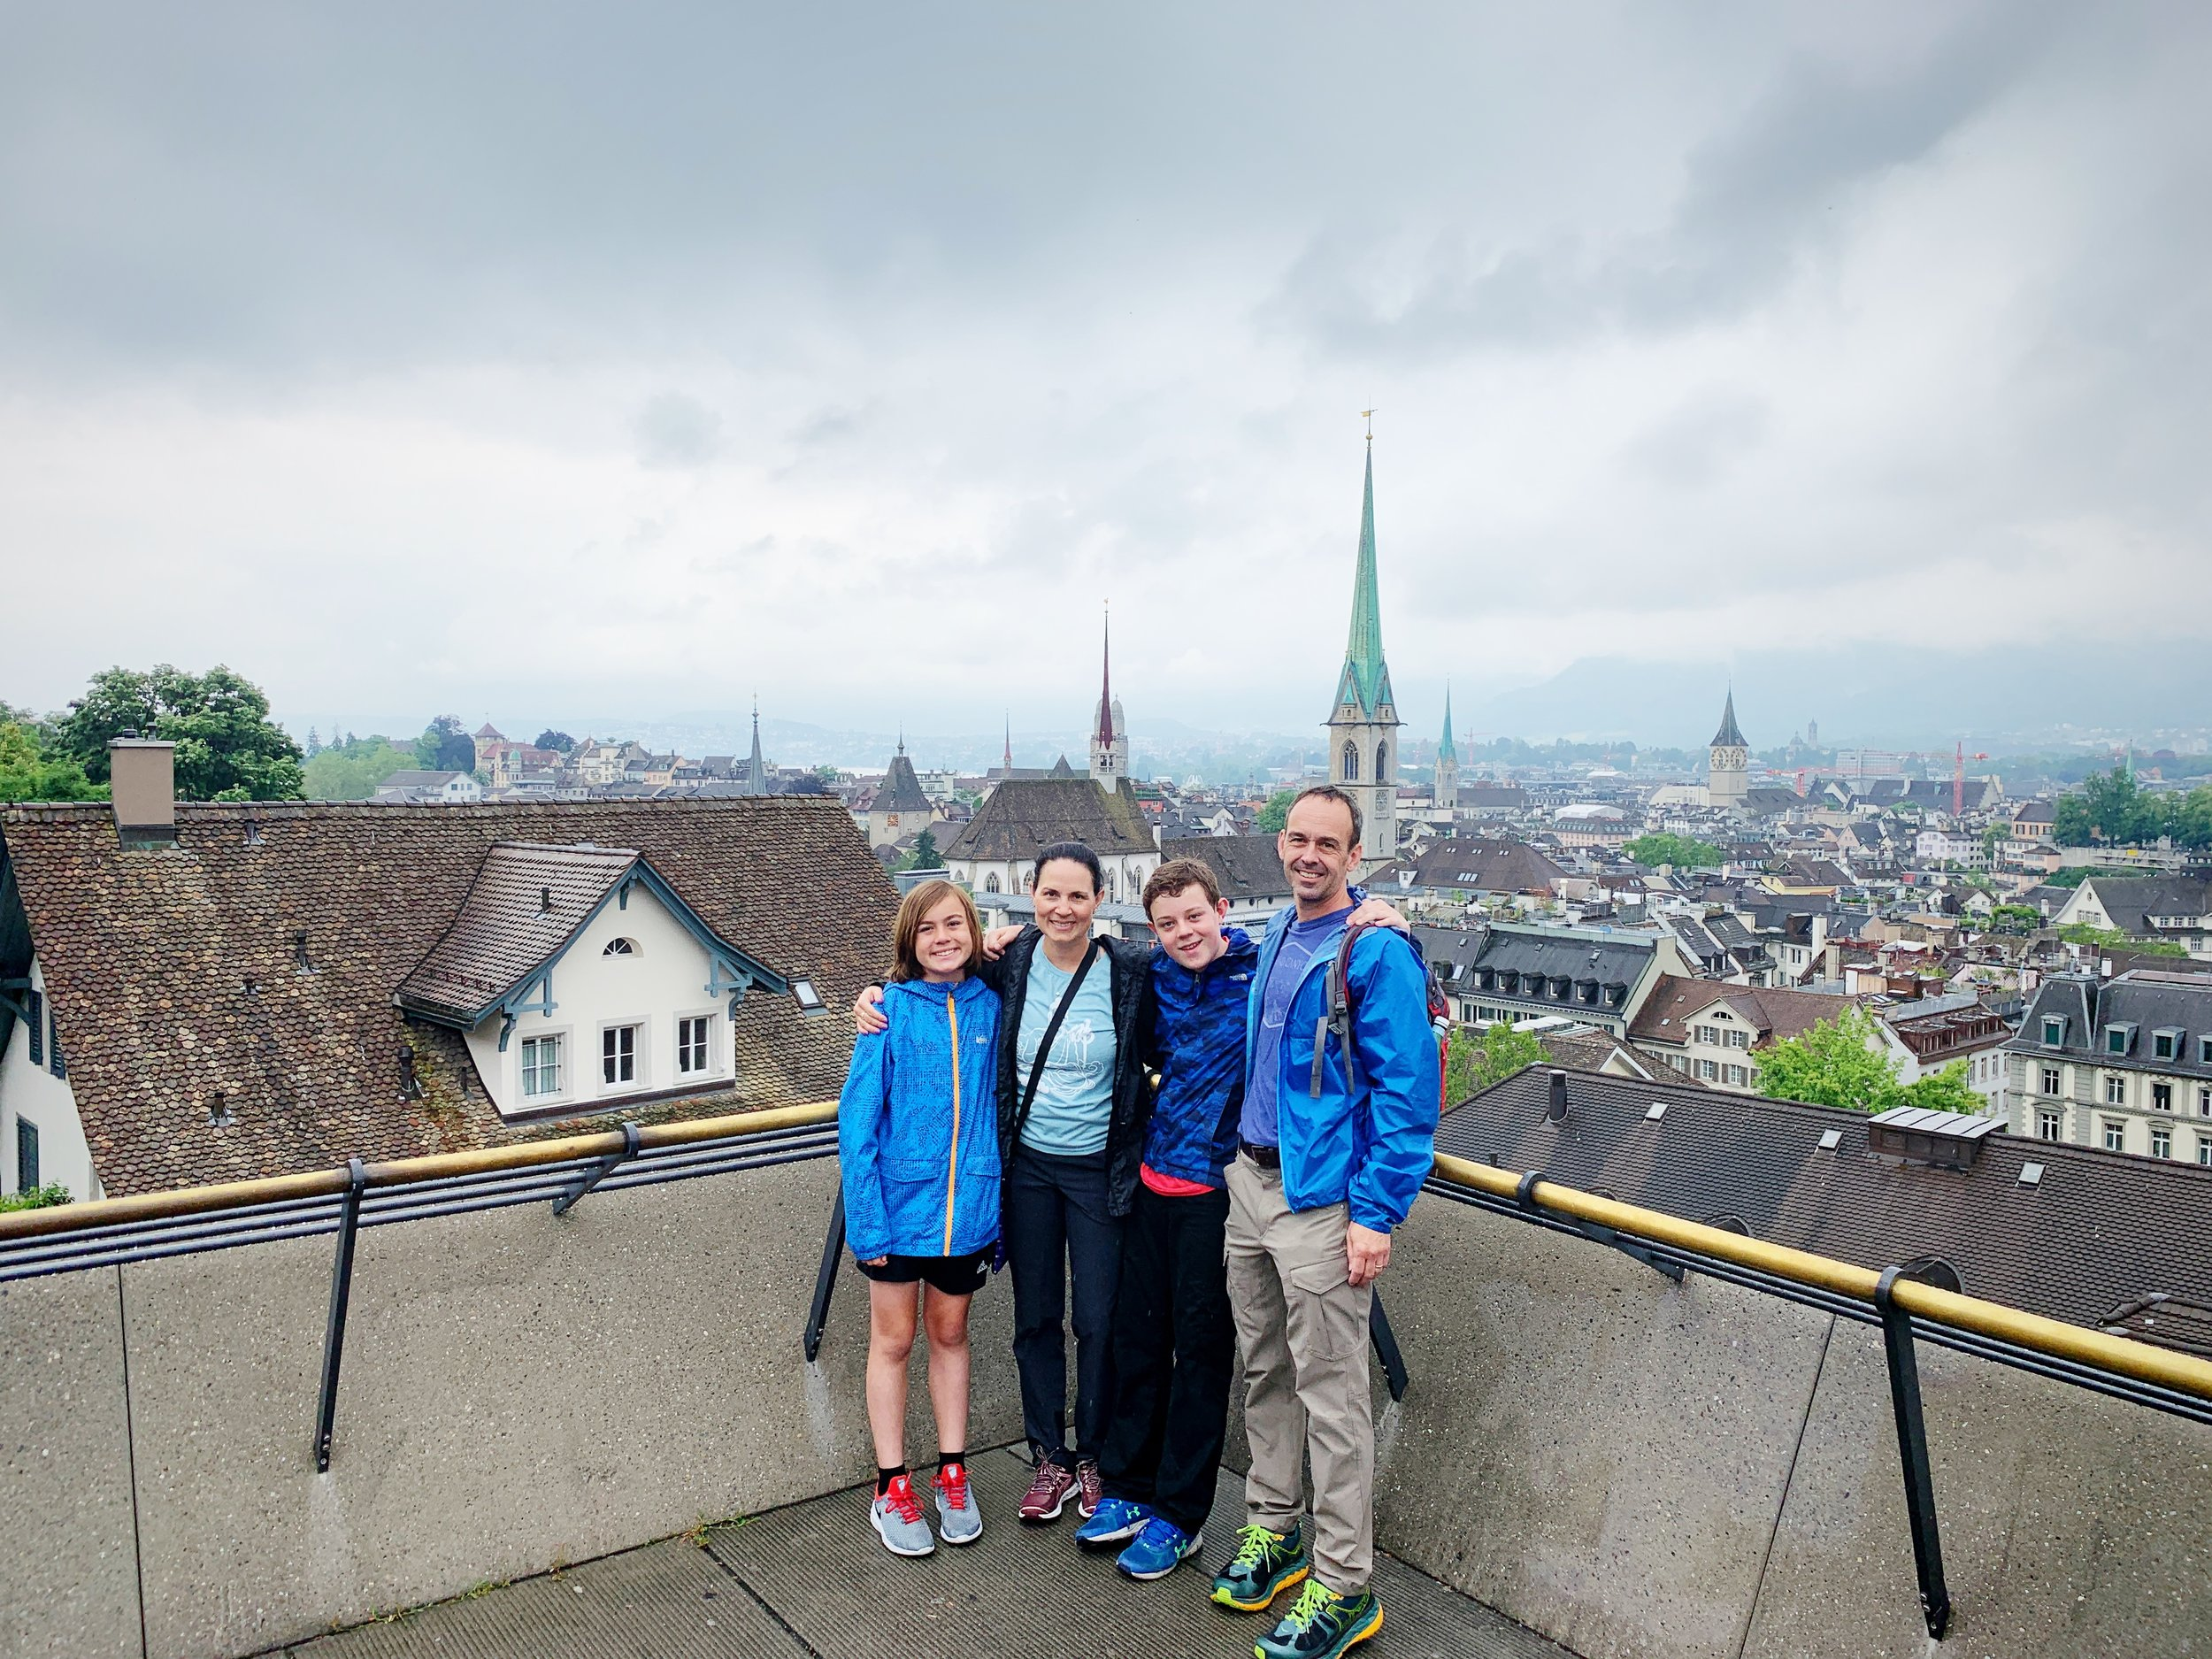 My family at the starting point of our complicated Summer 2019 itinerary, Zurich, Switzerland, which we planned with the help of Tamara McDonald, a travel manager at Vacationkids.com.